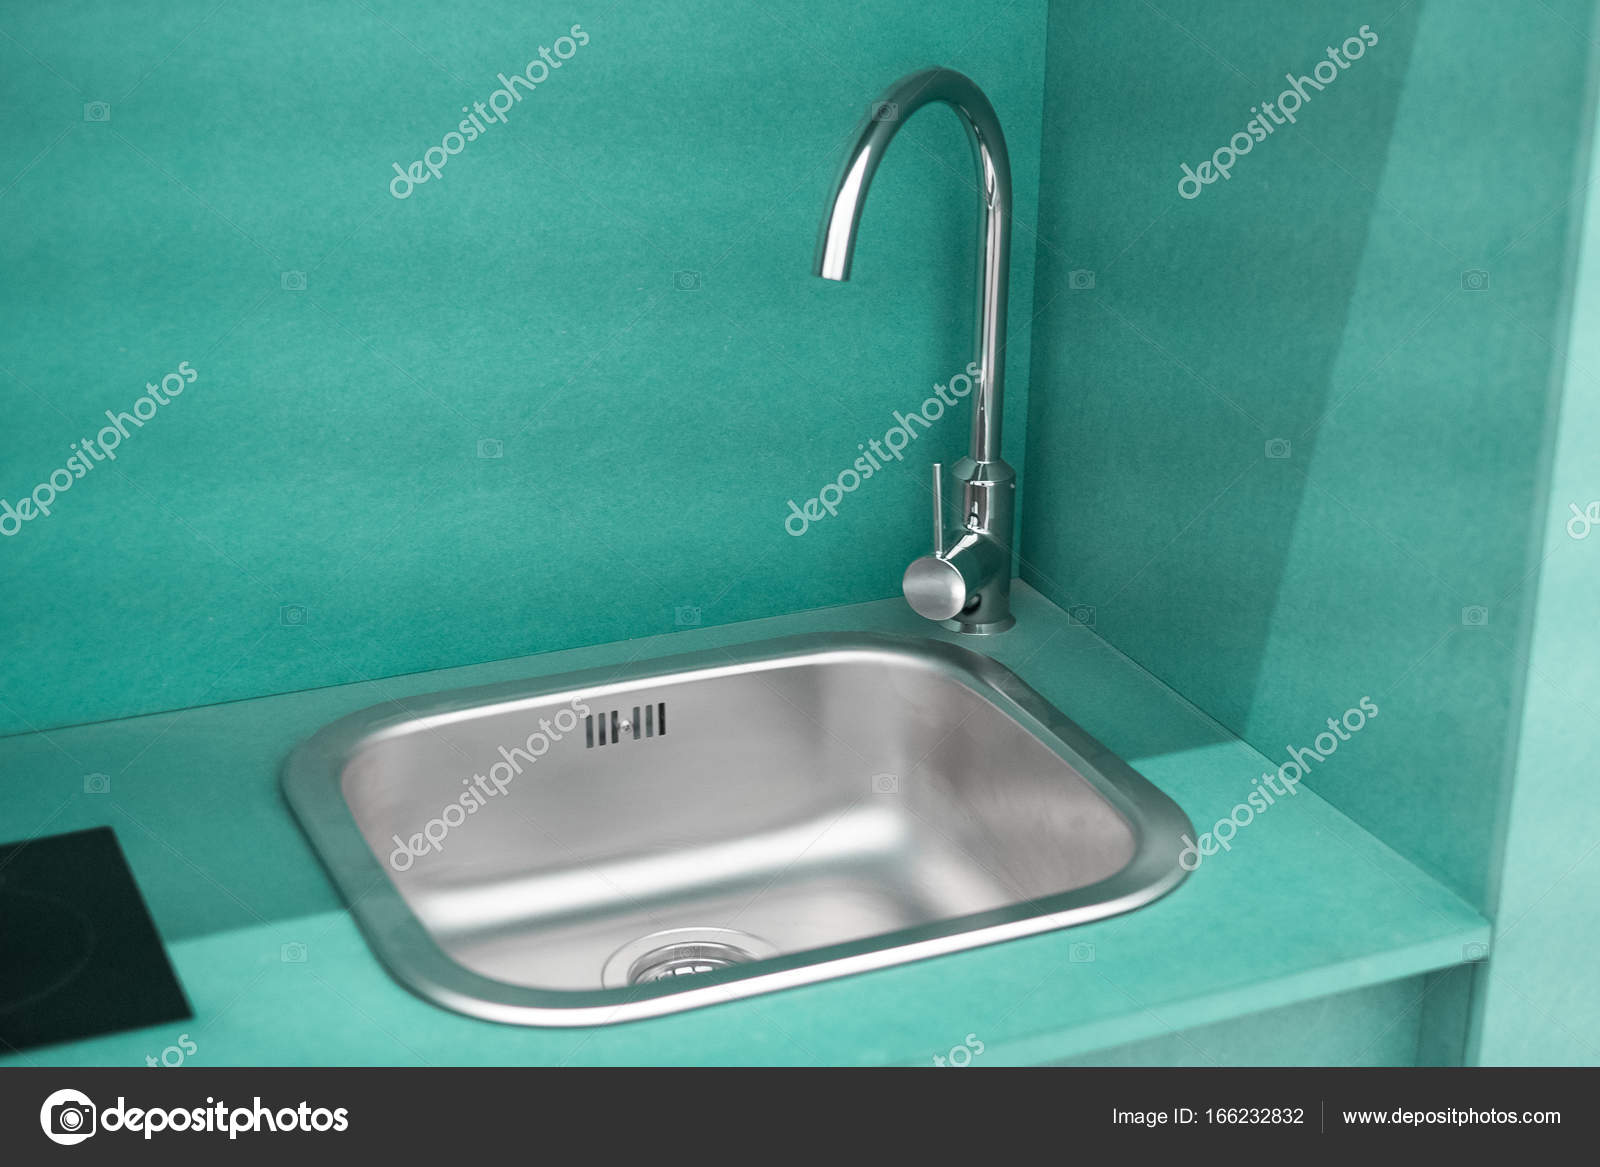 small kitchen sinks commercial hoods 小厨房的水槽 图库照片 c marvlc 166232832